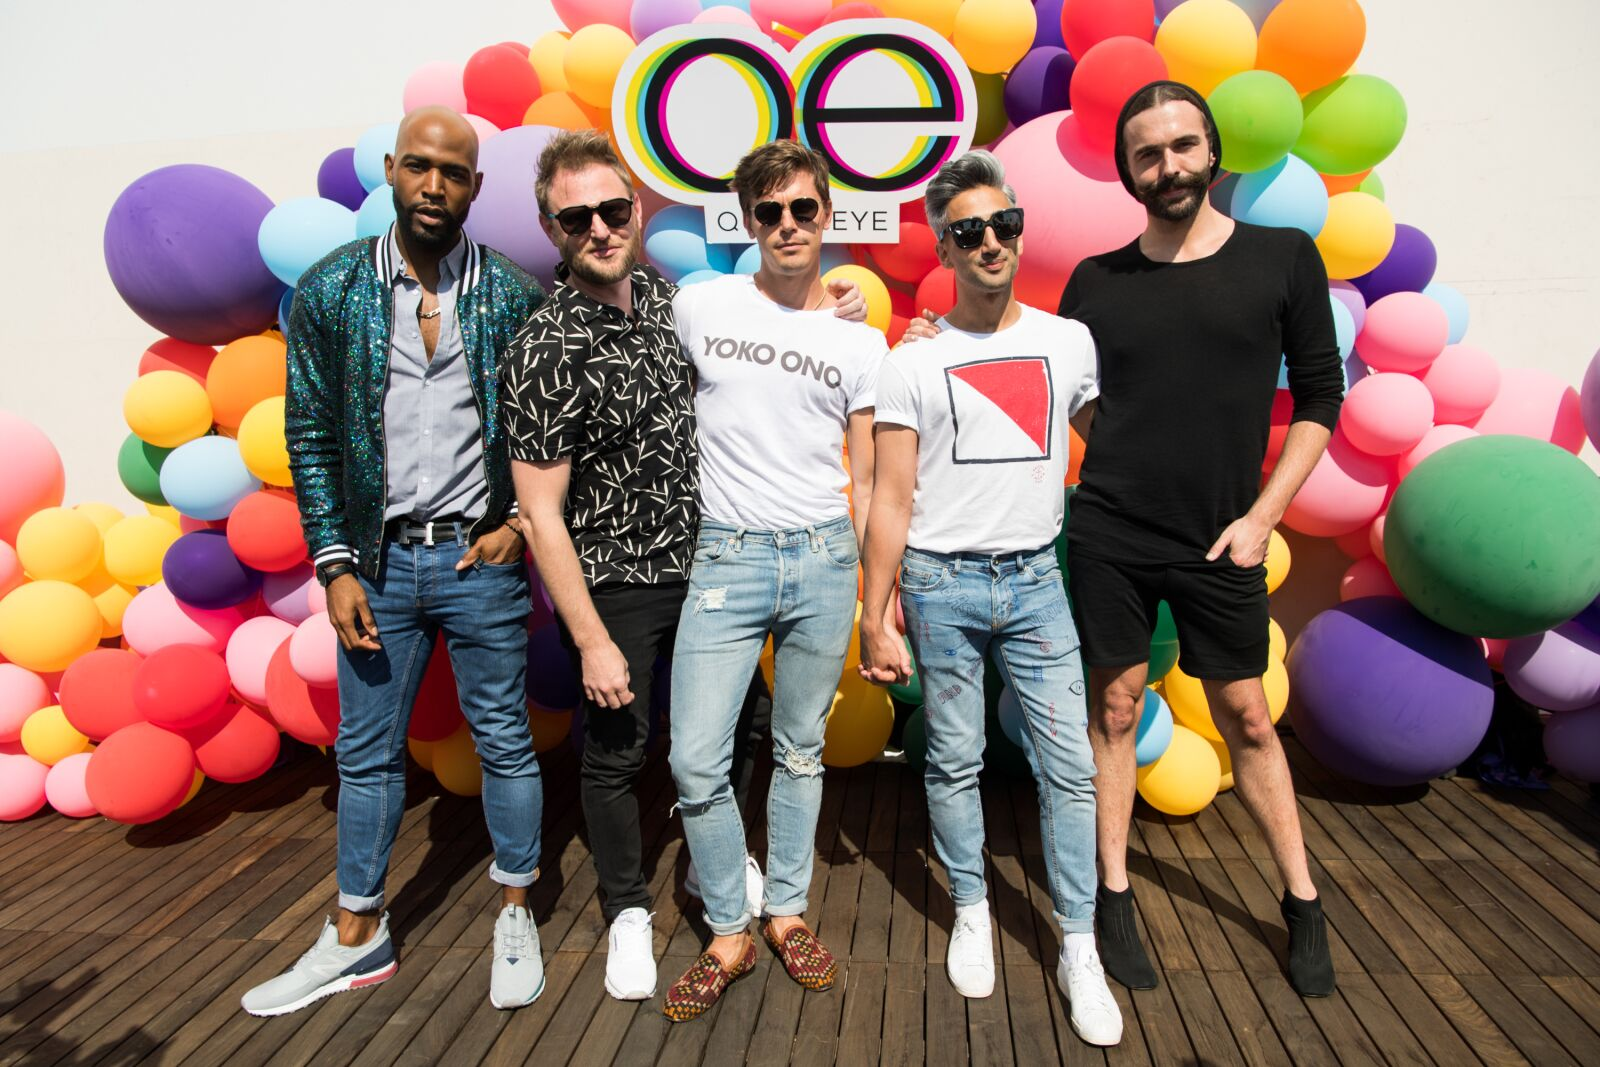 Queer Eye: Knocking down toxic masculinity one make better at a time